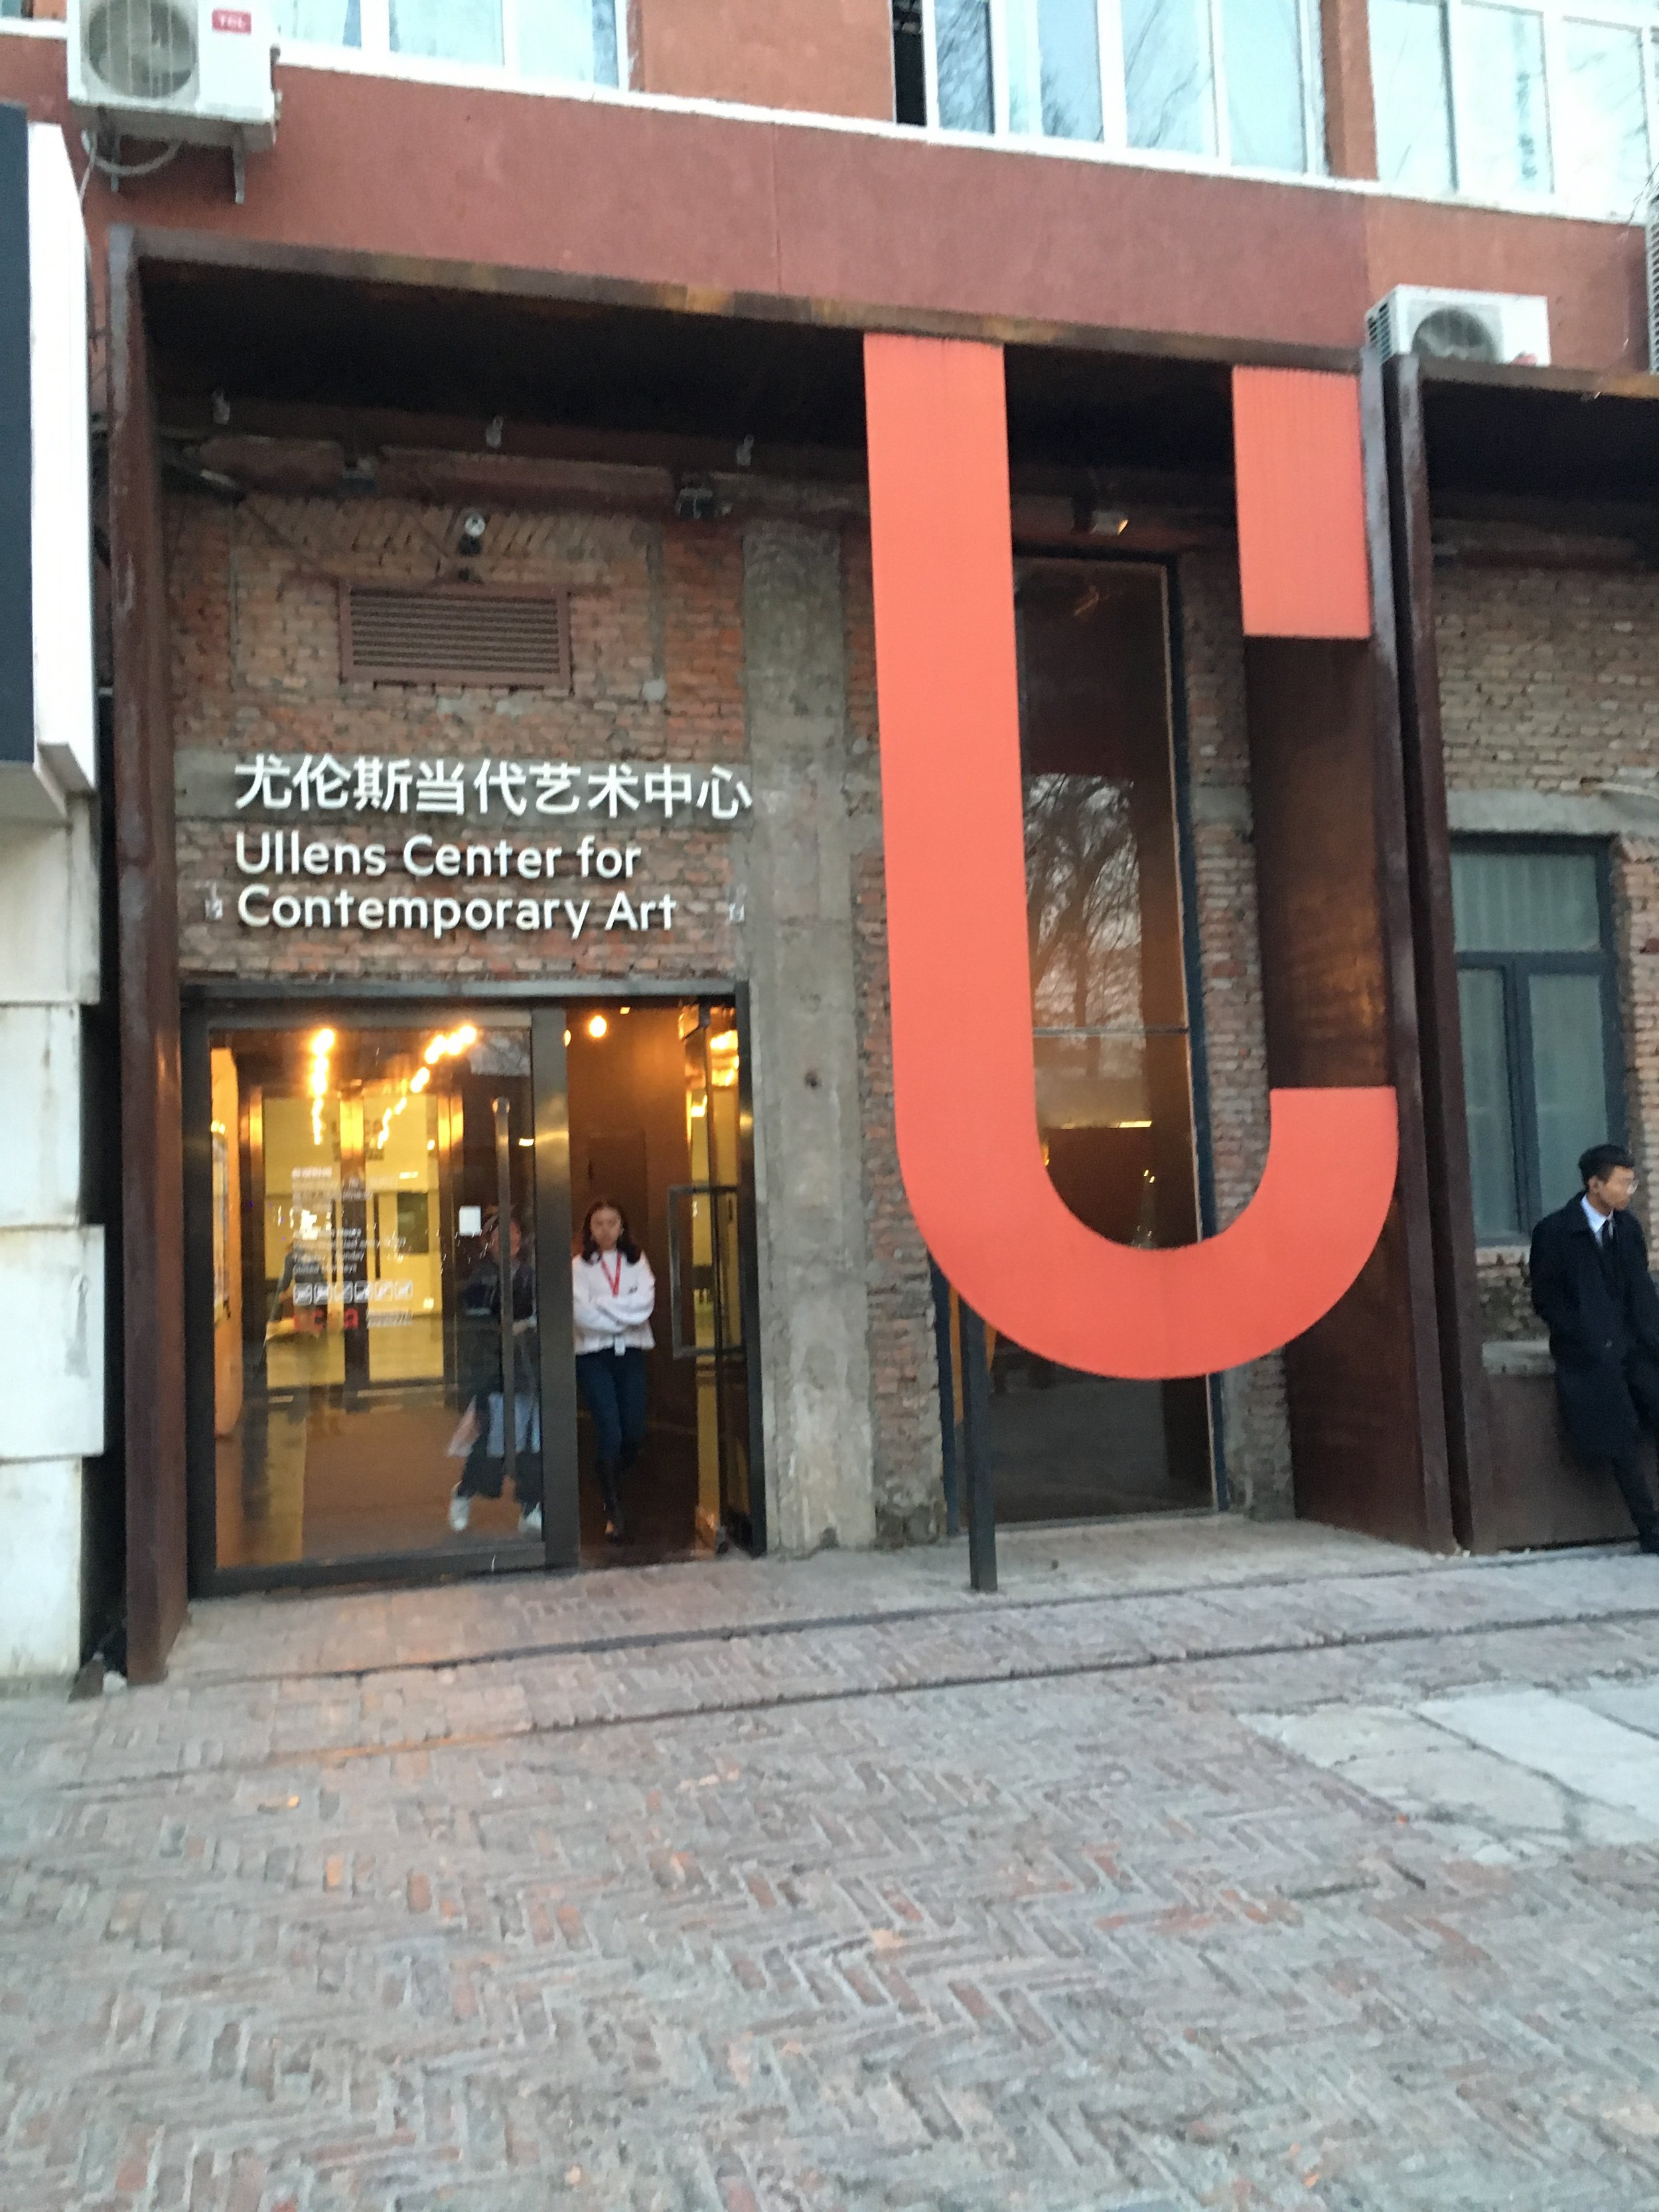 Exterior of UCCA